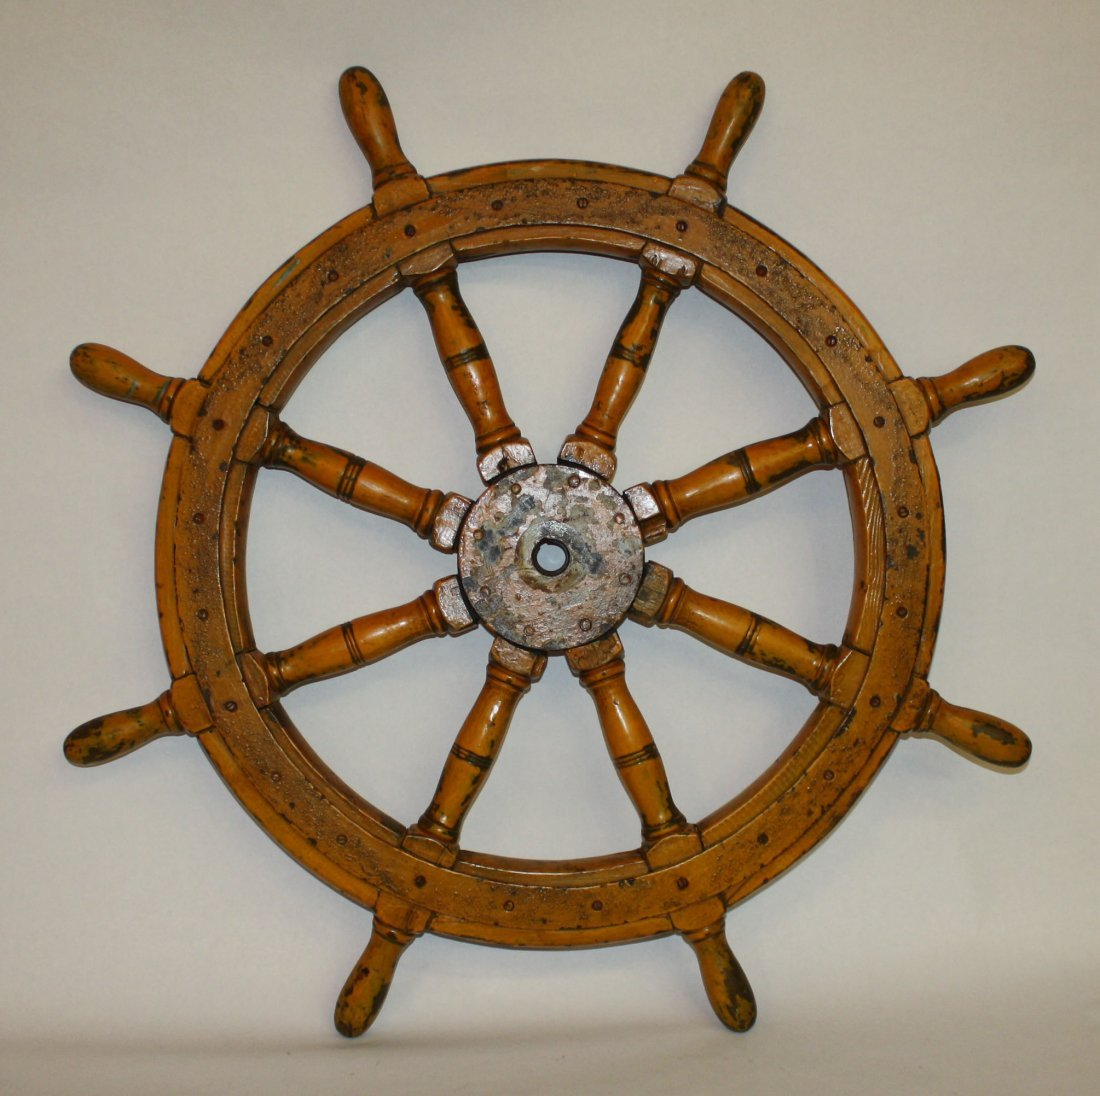 1: Painted wooden ships wheel